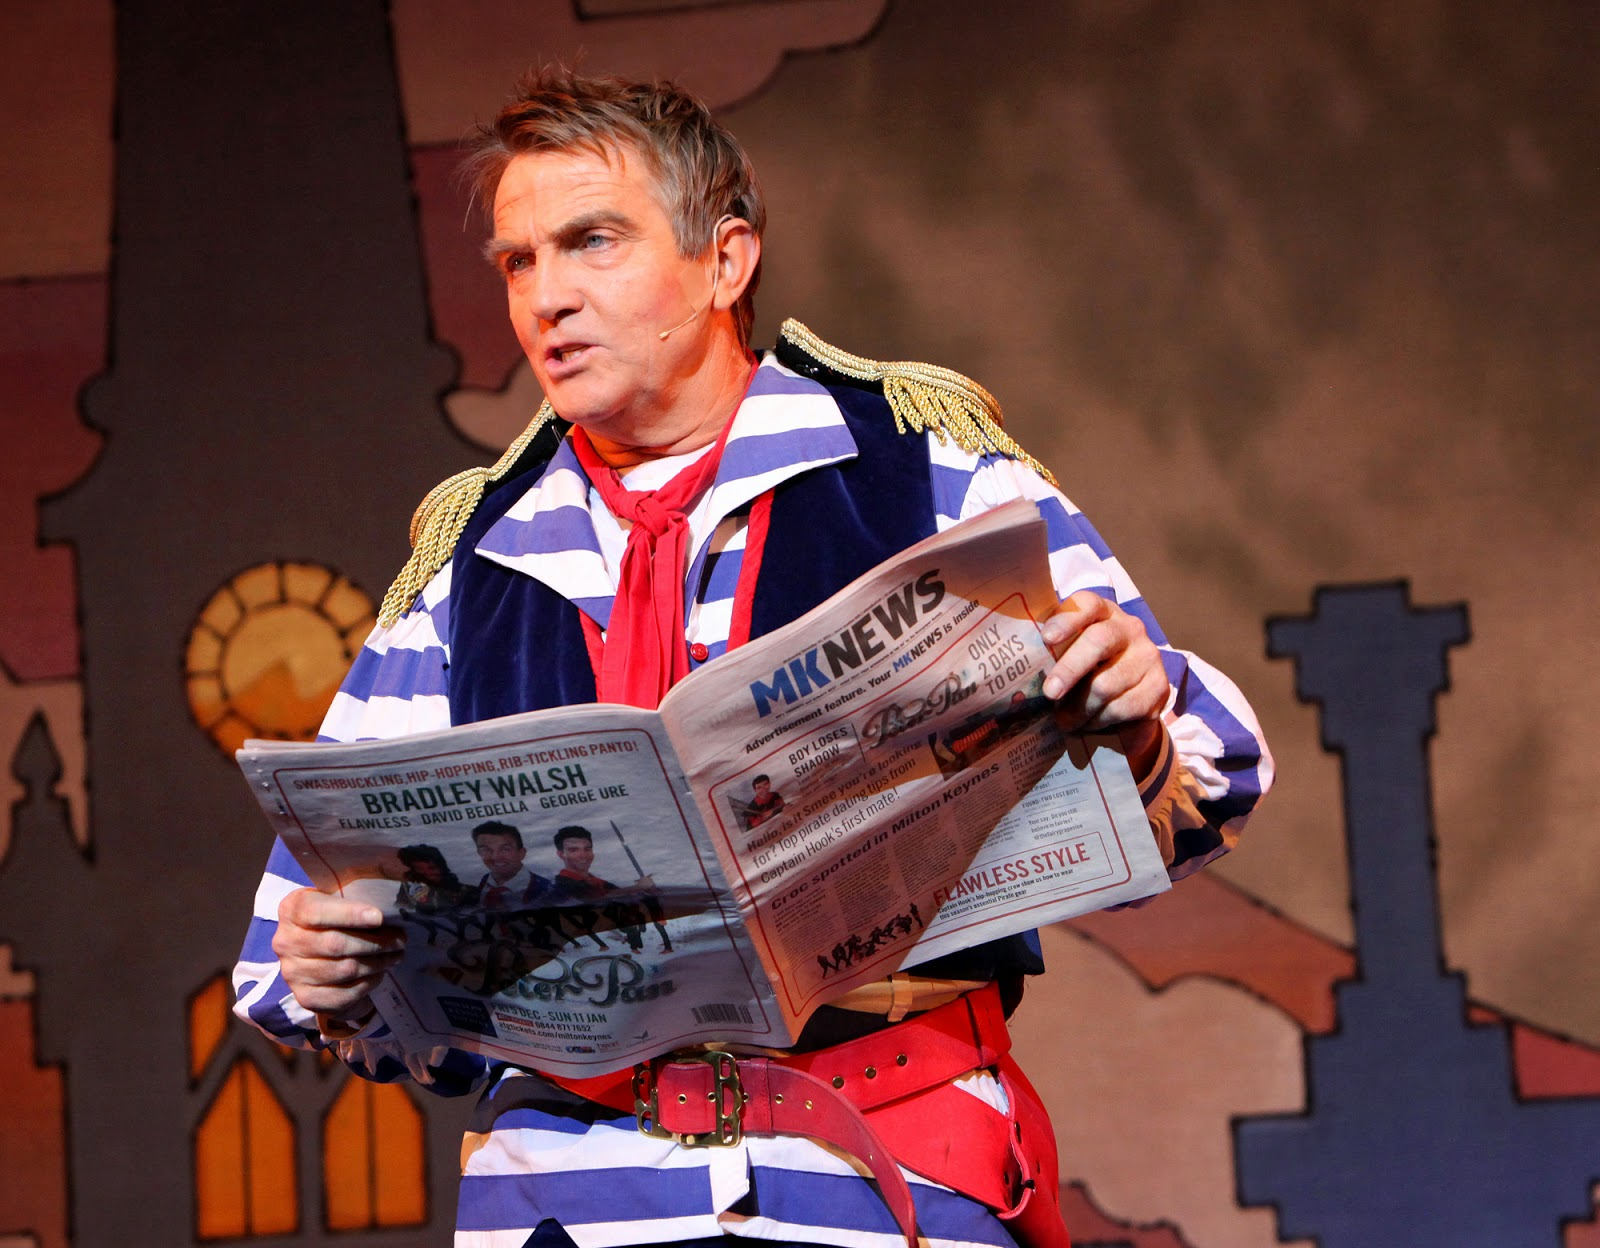 Bradley Walsh in Peter Pan at Milton Keynes Theatre